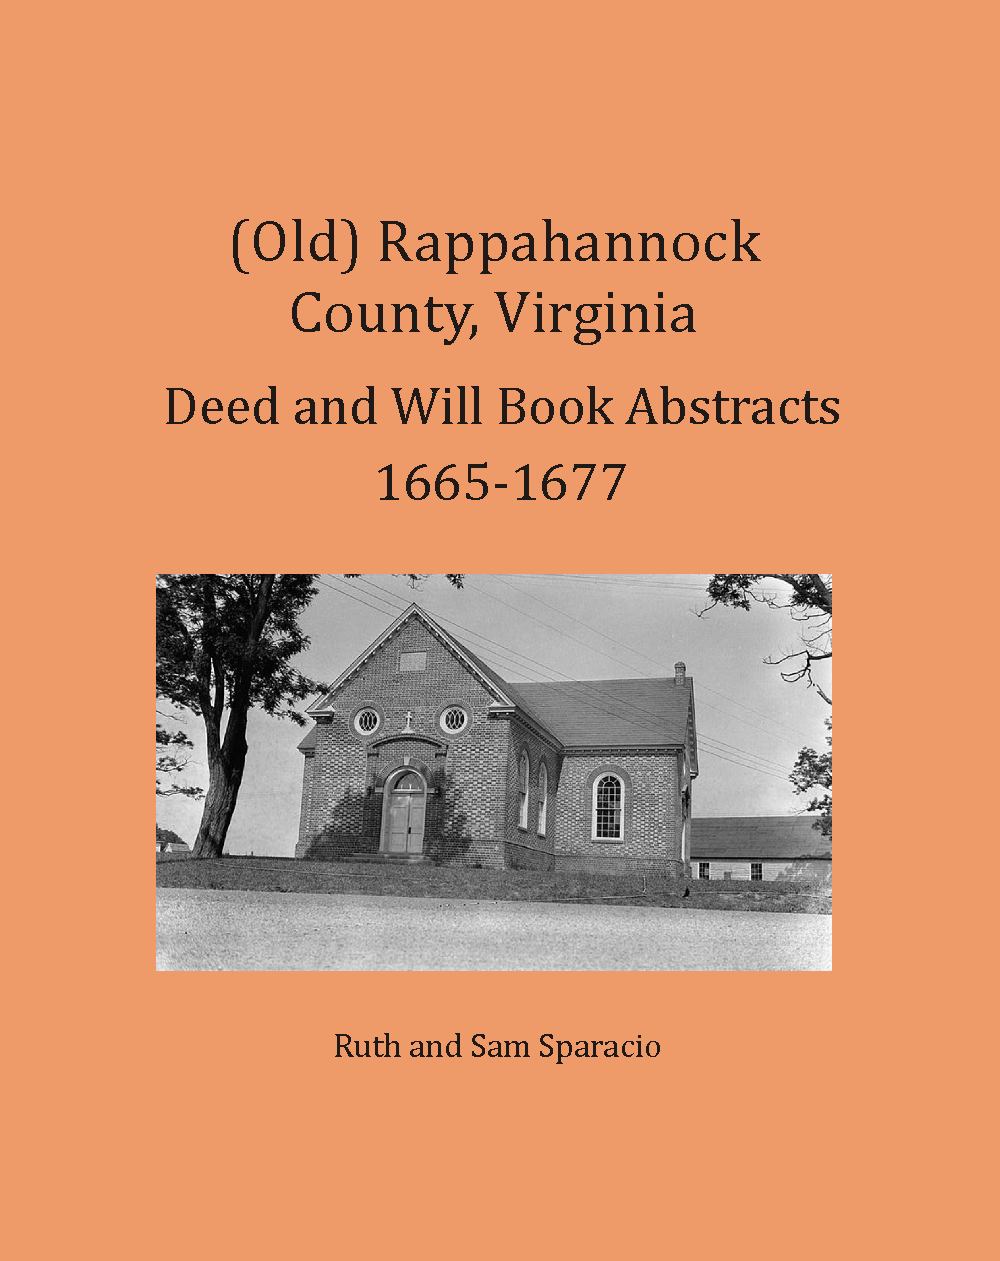 (Old) Rappahannock County, Virginia Deed and Will Book Abstracts, 1665-1677